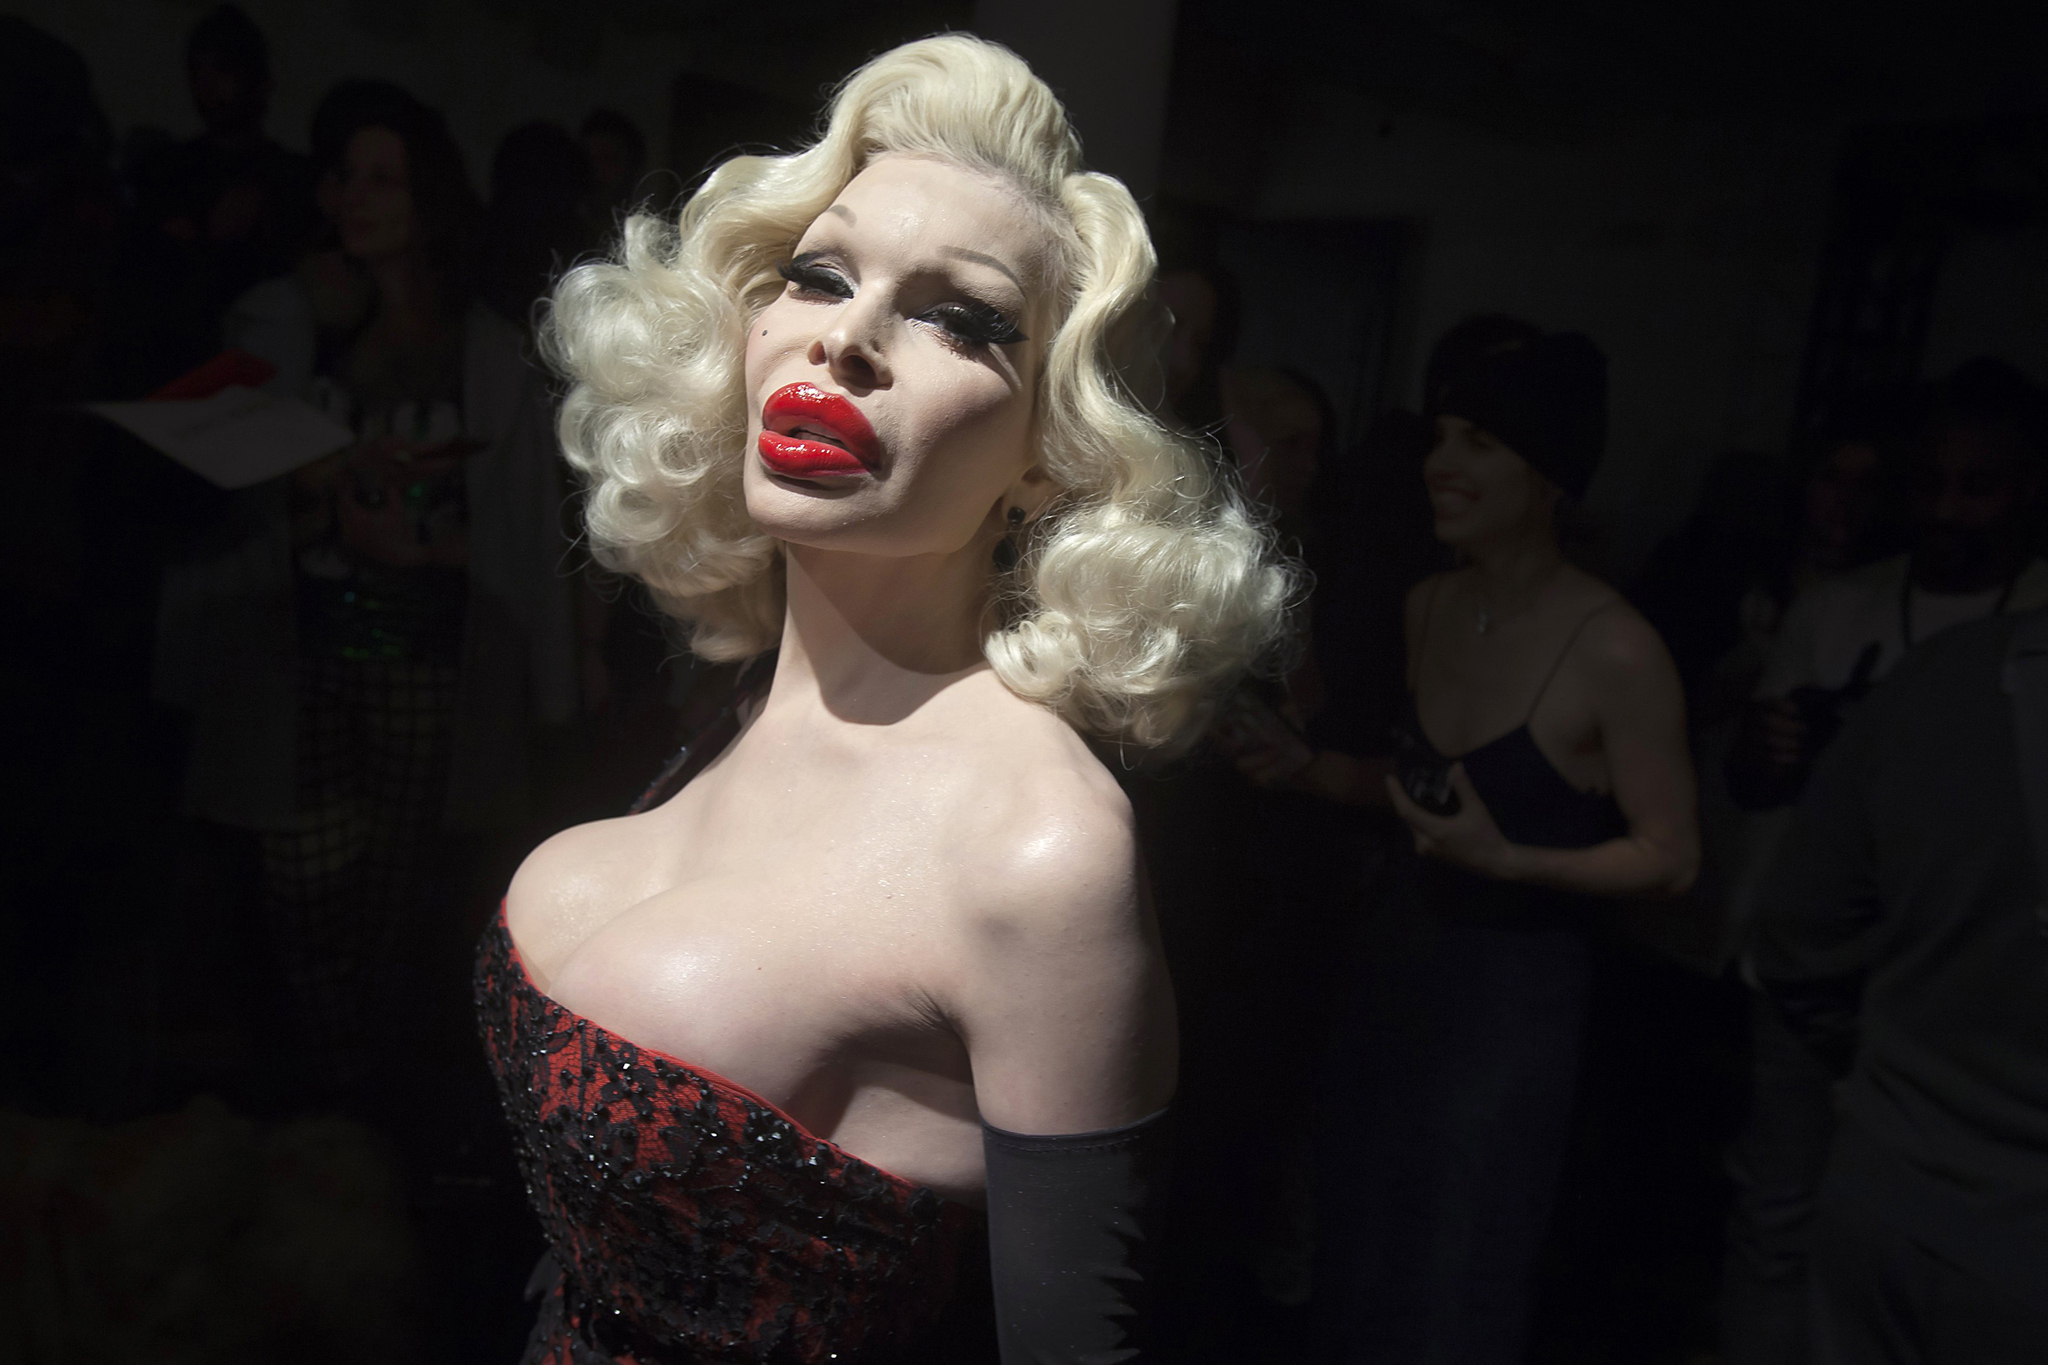 Model Amanda Lepore arrives before The Blonds 2015 collection show during New York Fashion Week...Model Amanda Lepore arrives before The Blonds 2015 collection show during New York Fashion Week in the Manhattan borough of New York February 18, 2015. Picture taken February 18, 2015.    REUTERS/Carlo Allegri   (UNITED STATES - Tags: FASHION TPX IMAGES OF THE DAY)